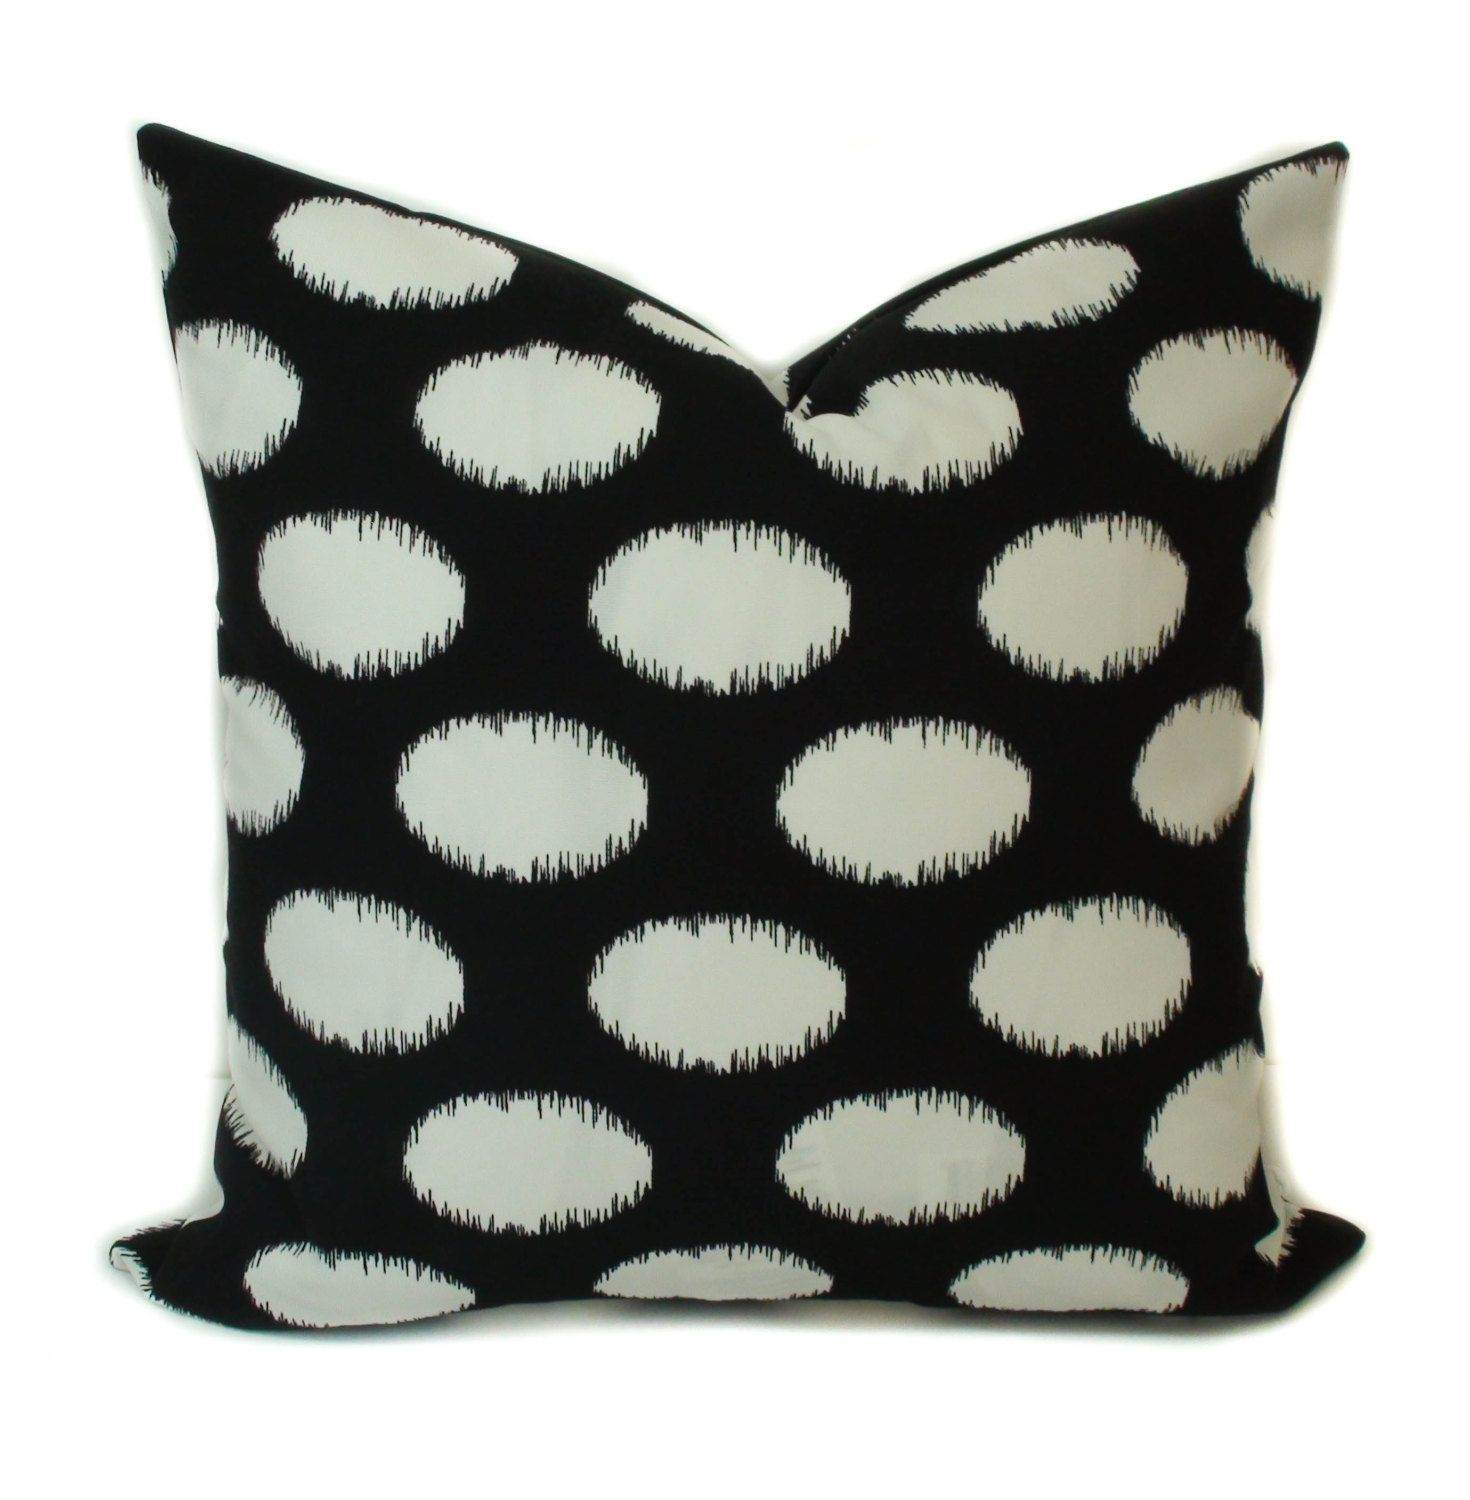 Outdoor pillow cover 20x20 Outdoor pillow Decorative pillow